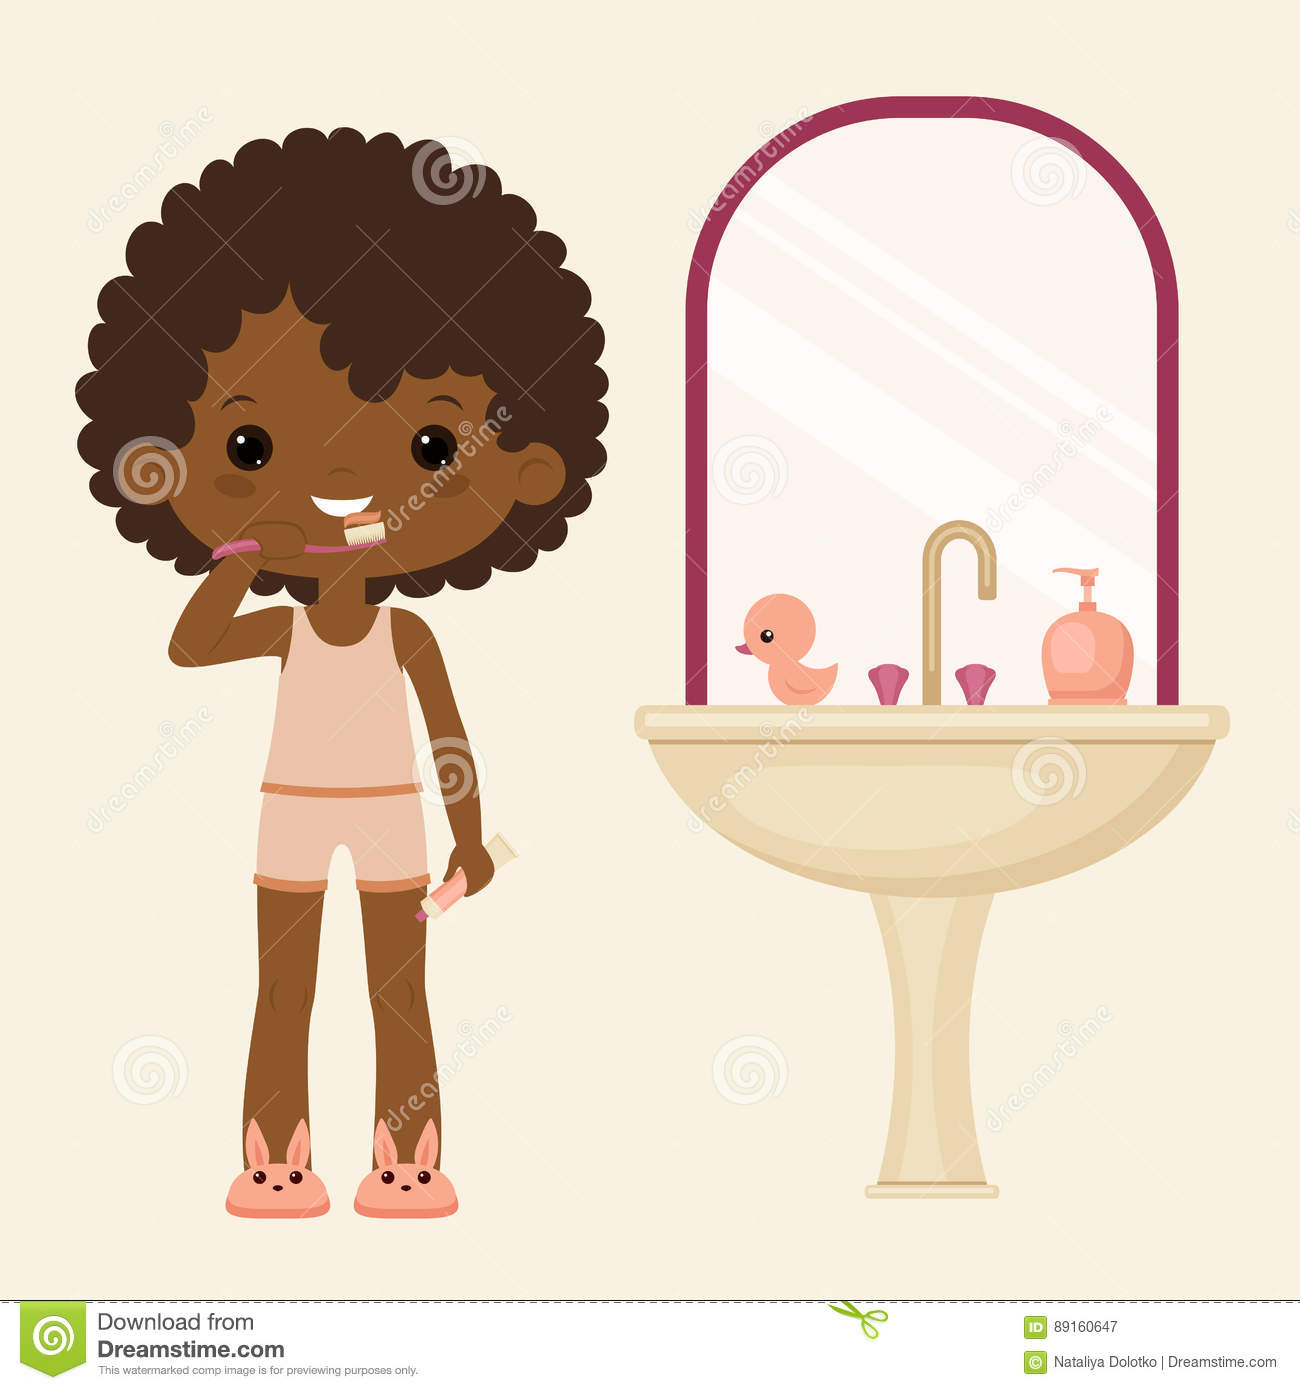 Apologise, black girl in bathroom will change